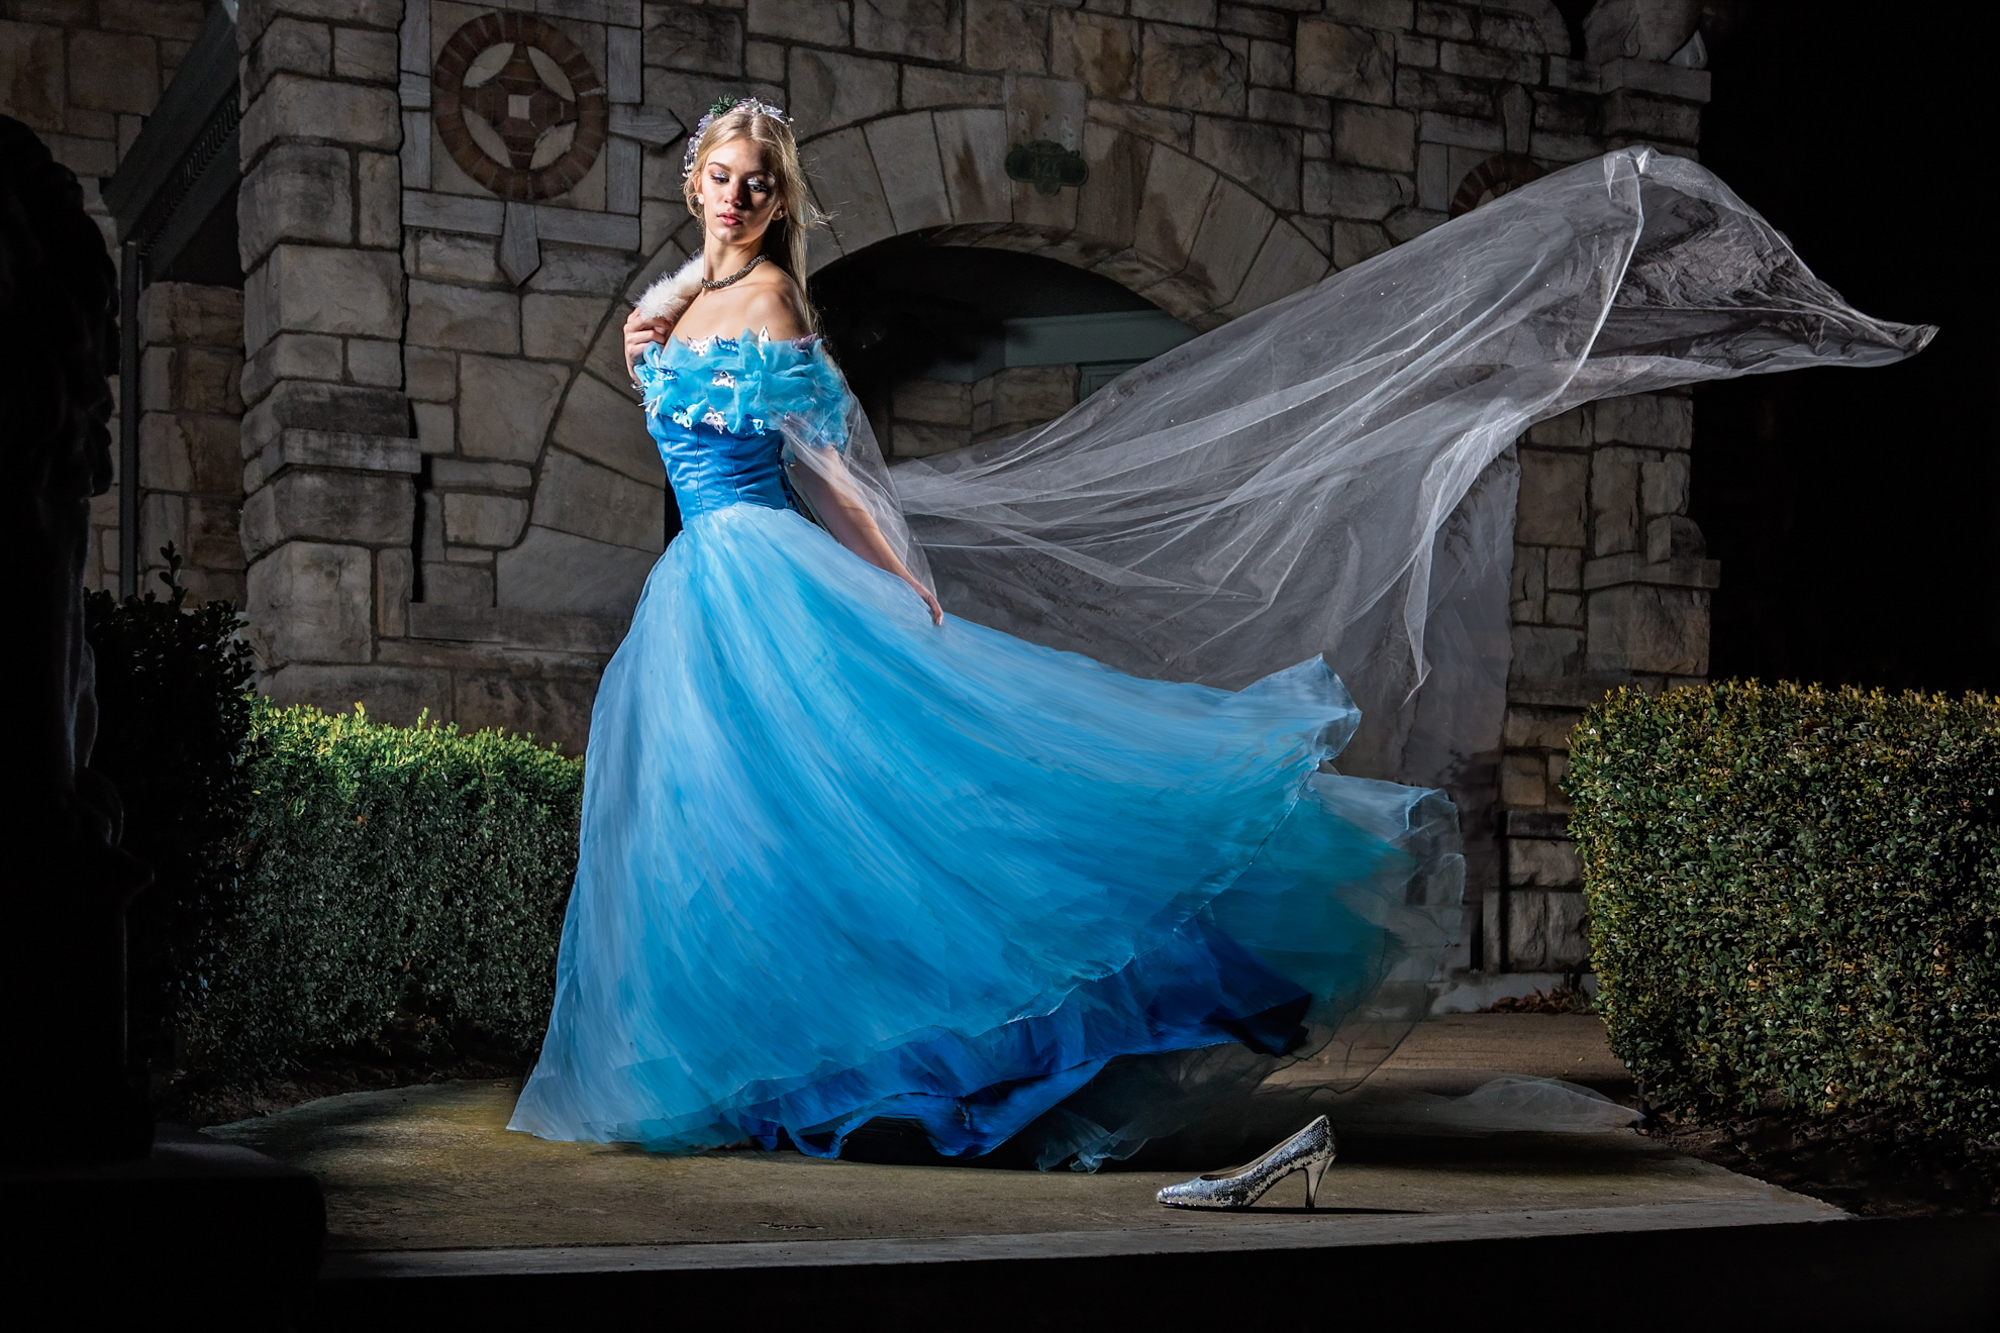 Romance Productions - Local Kansas City group working together achieving a fantasy styled images.